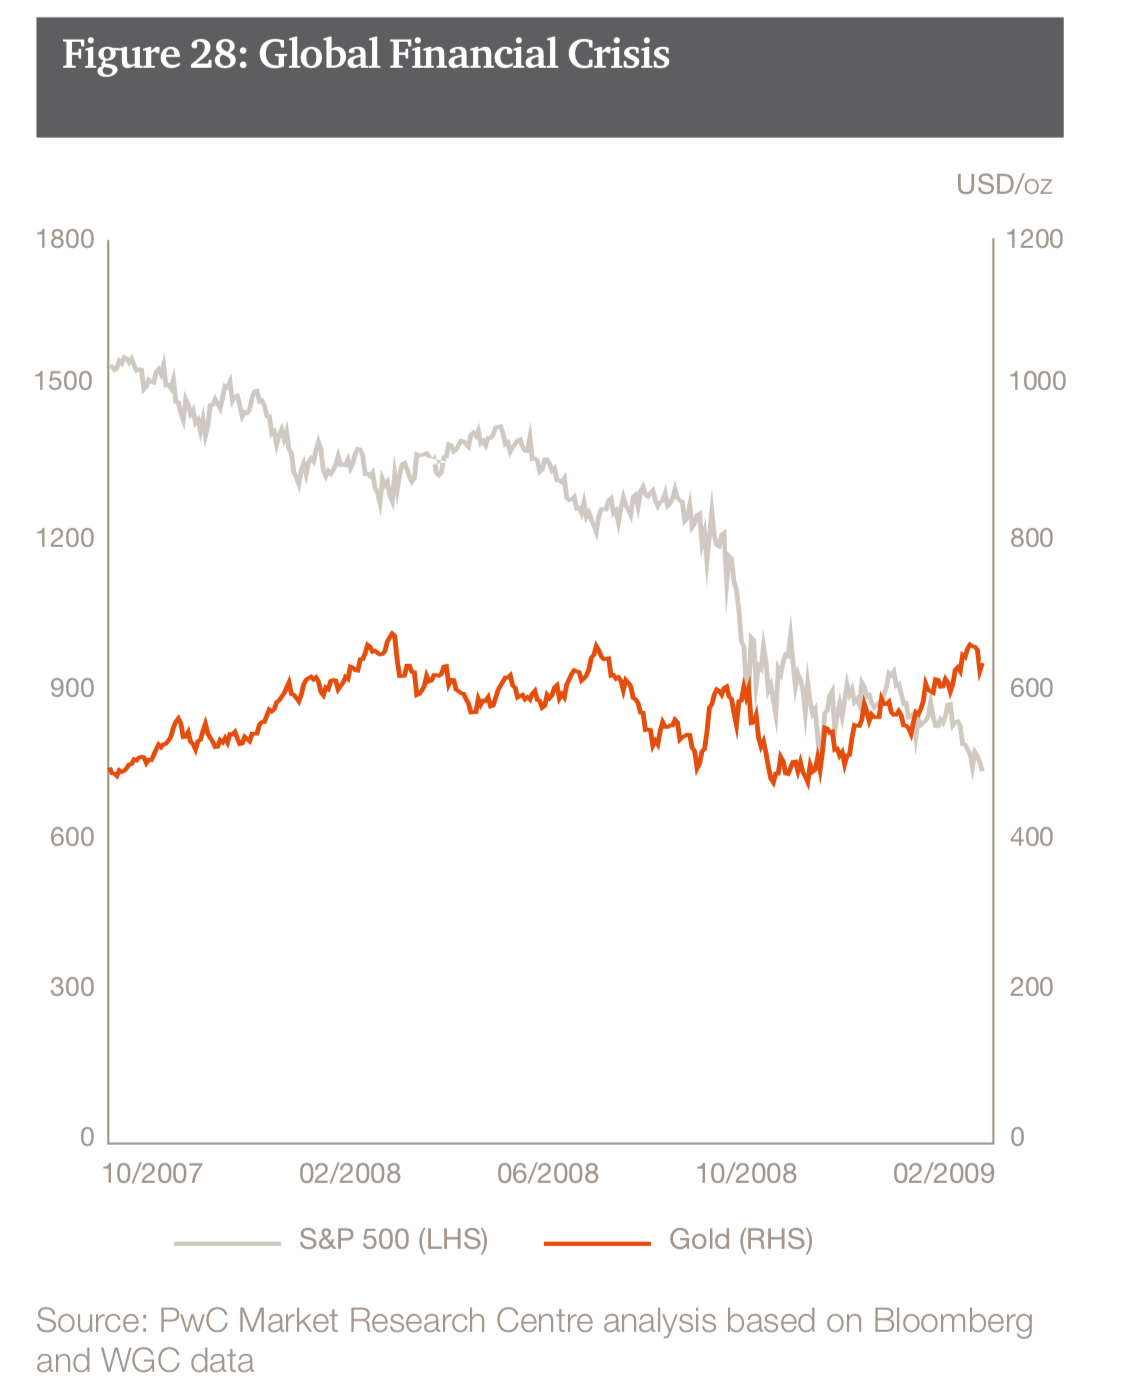 S&P 500 and Gold Prices, Oct 2007 - Feb 2009